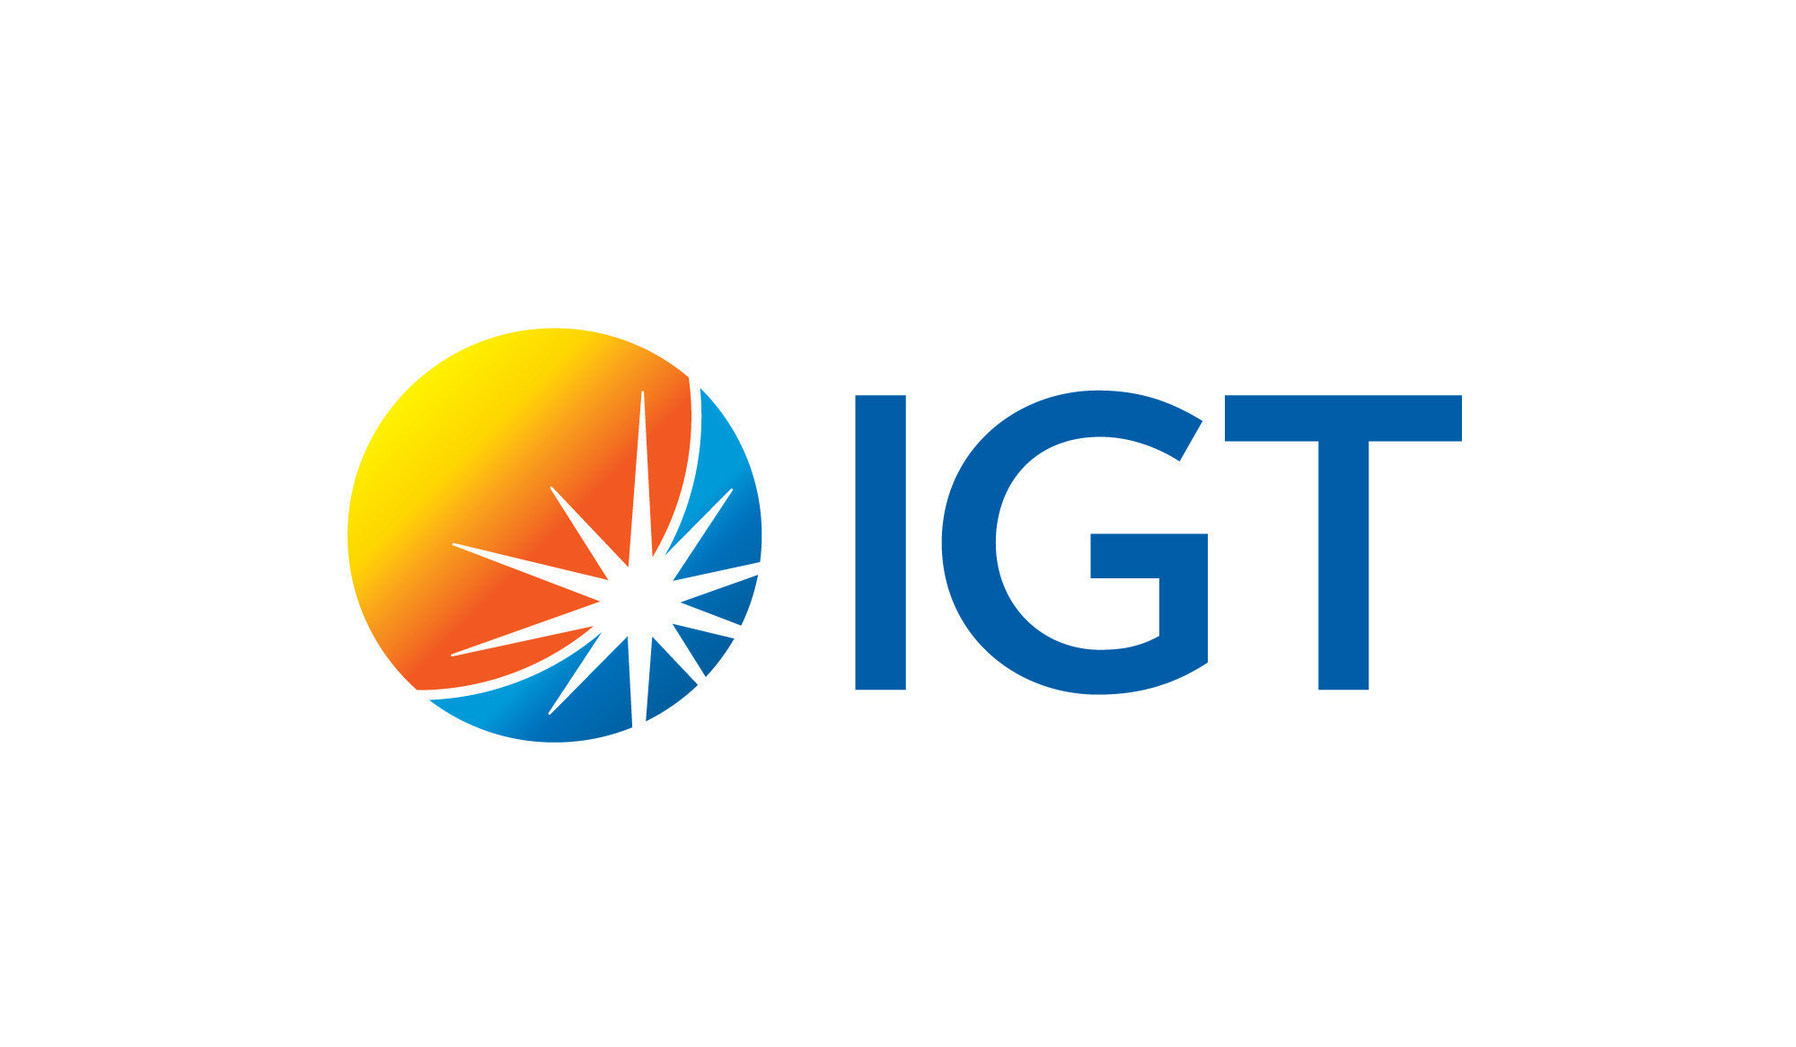 IGT (NYSE:IGT) is the global leader in gaming. We deliver entertaining and responsible gaming experiences for players across all channels and regulated segments, from Gaming Machines and Lotteries to Sports Betting and Digital. Leveraging a wealth of compelling content, substantial investment in innovation, player insights, operational expertise, and leading-edge technology, our solutions deliver unrivaled gaming experiences that engage players and drive growth. We have a well-established local presence and relationships with governments and regulators in more than 100 countries around the world, and create value by adhering to the highest standards of service, integrity, and responsibility. IGT has approximately 12,000 employees. For more information, please visit www.igt.com.